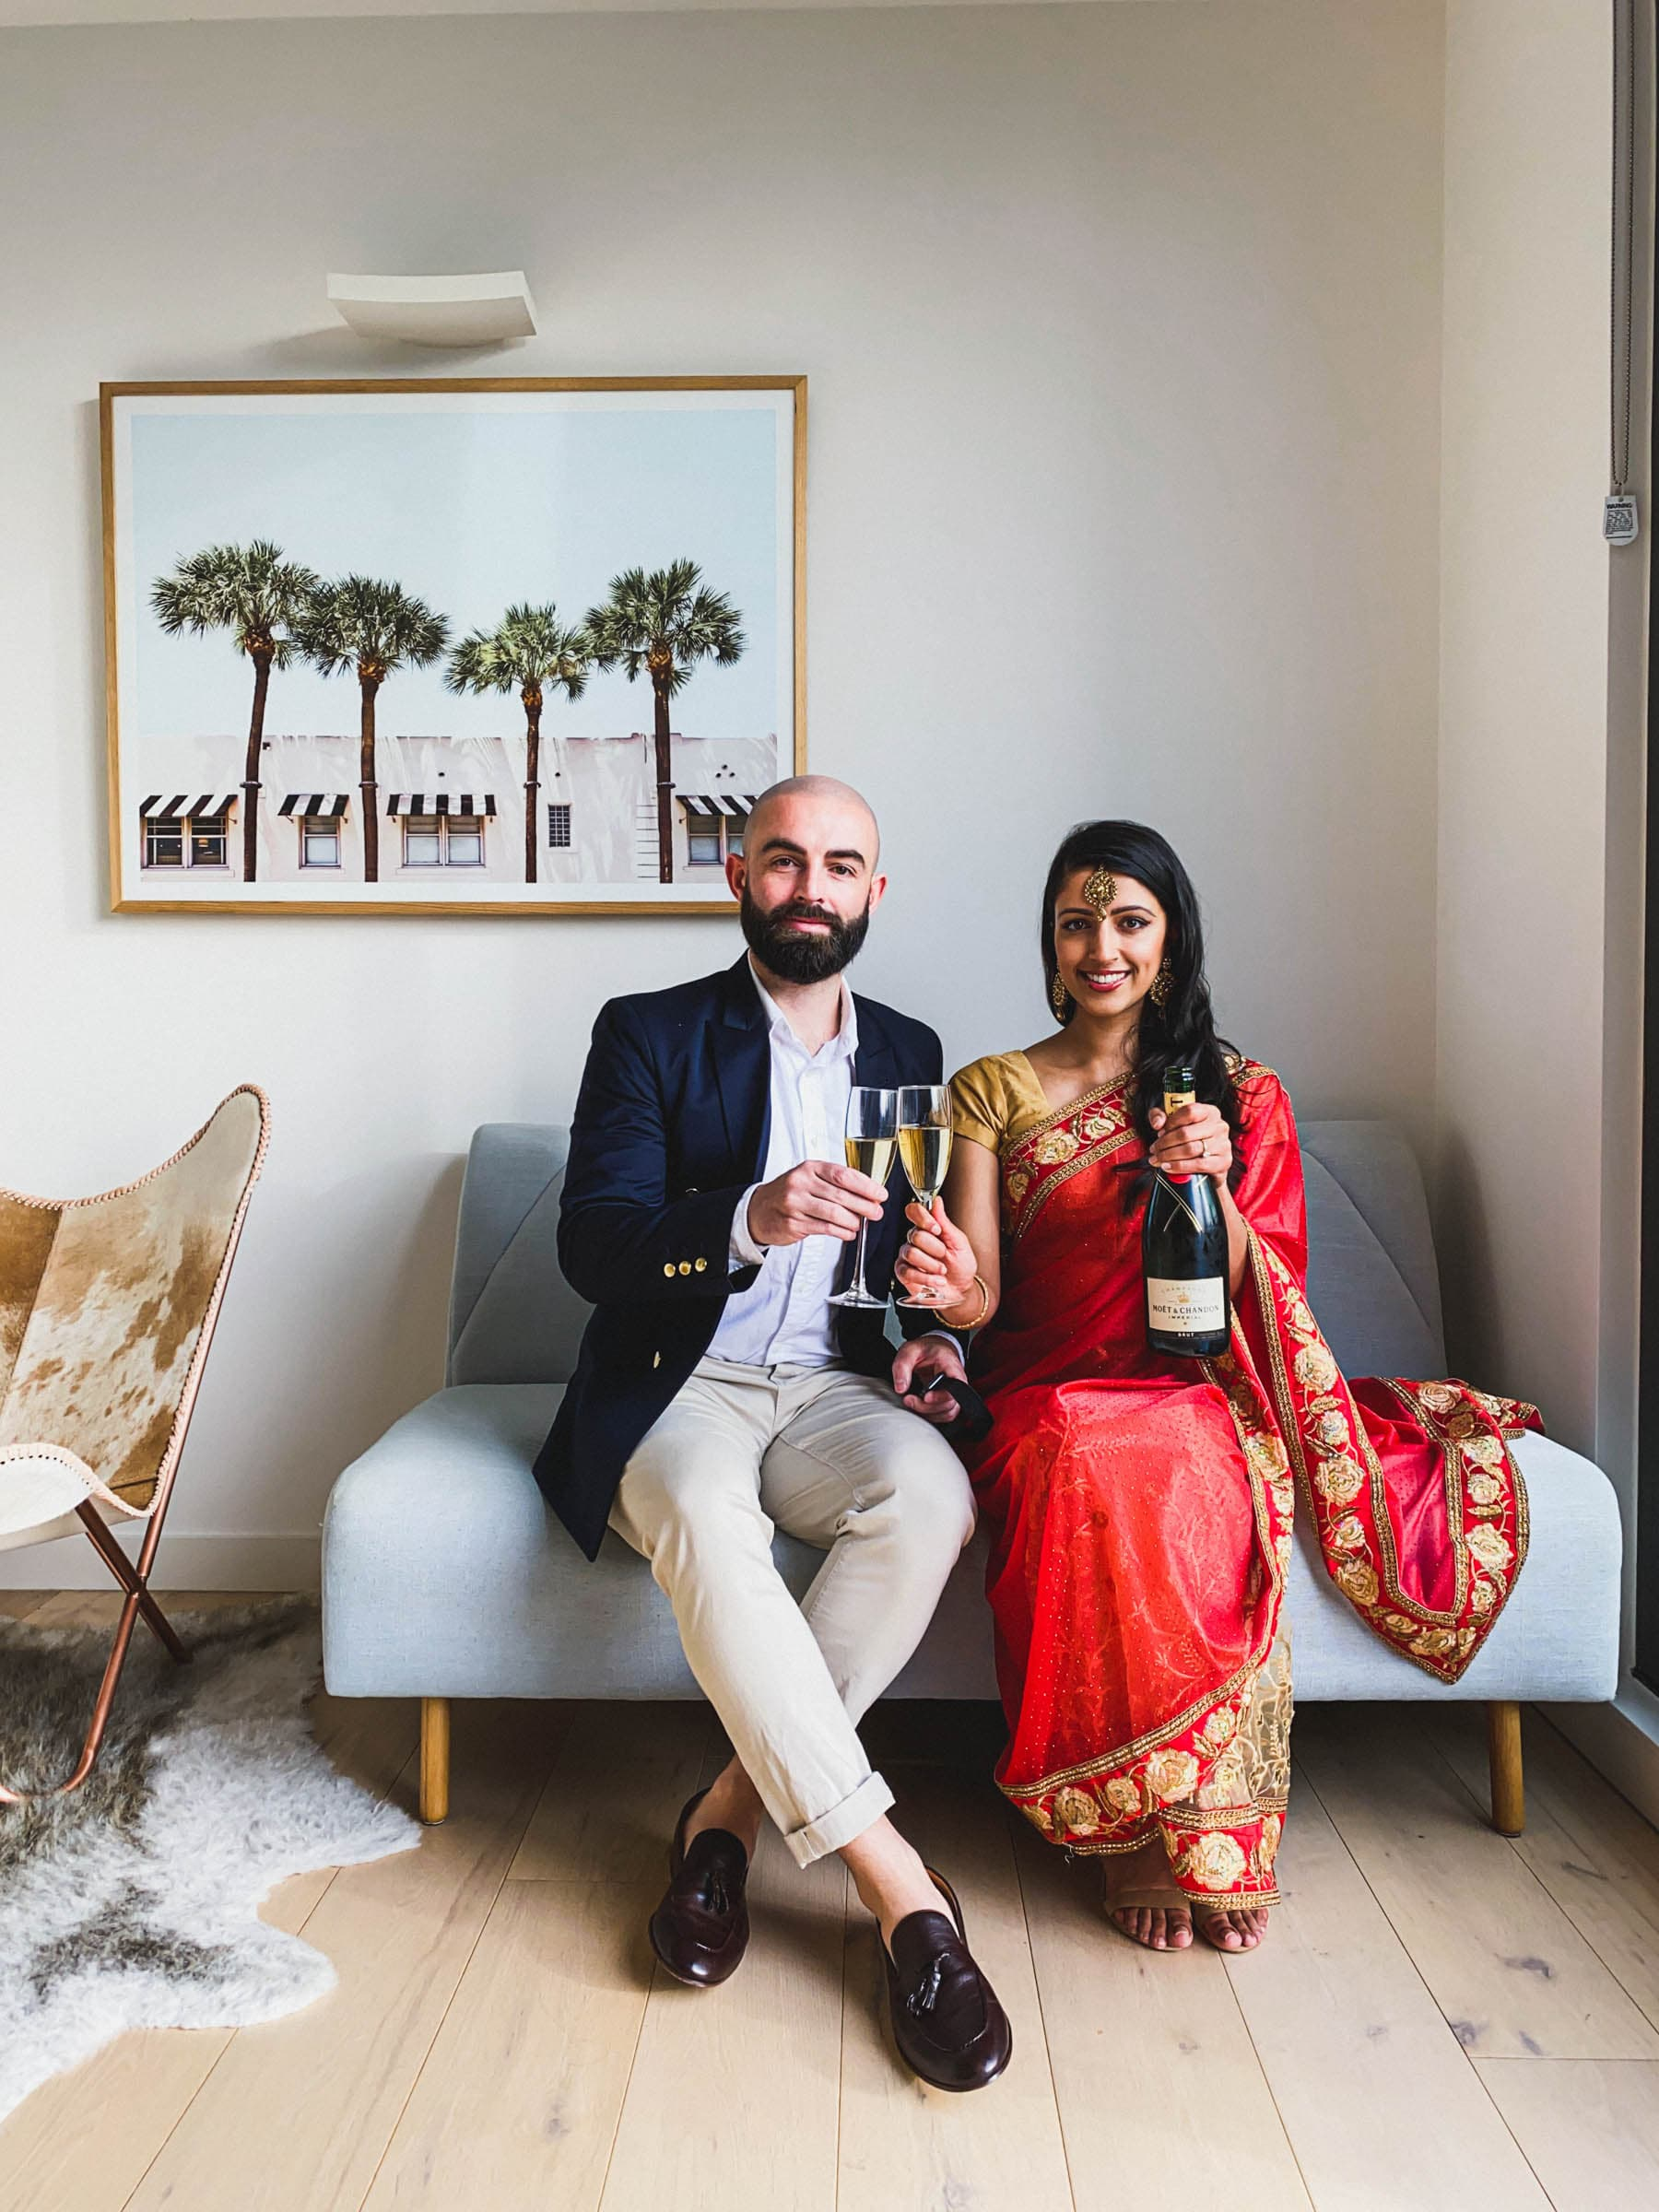 How to postpone your Indian wedding amid Covid19. Melbourne bride to be, Shilpa shares her wedding postponement story on The Maharani Diaries. Her Indian wedding is all set to take place at Quat Quatta next year.